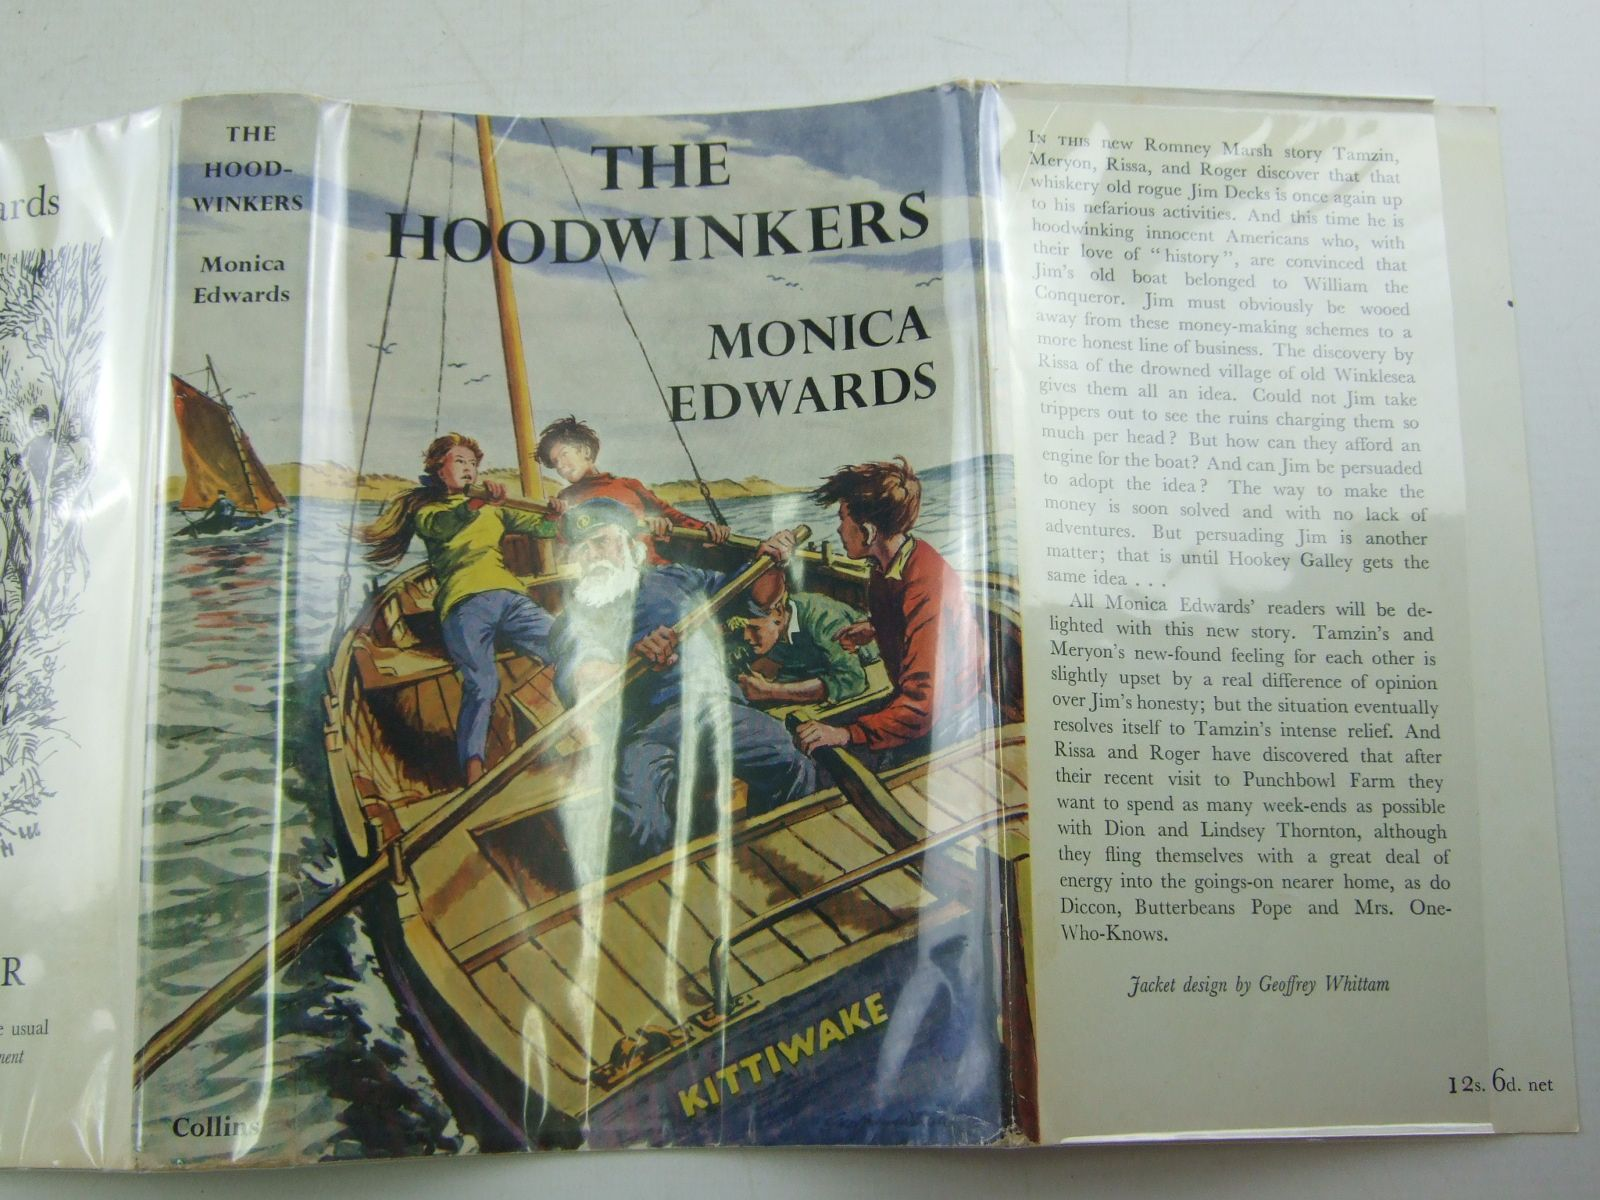 Photo of THE HOODWINKERS written by Edwards, Monica illustrated by Whittam, Geoffrey published by Collins (STOCK CODE: 2108059)  for sale by Stella & Rose's Books